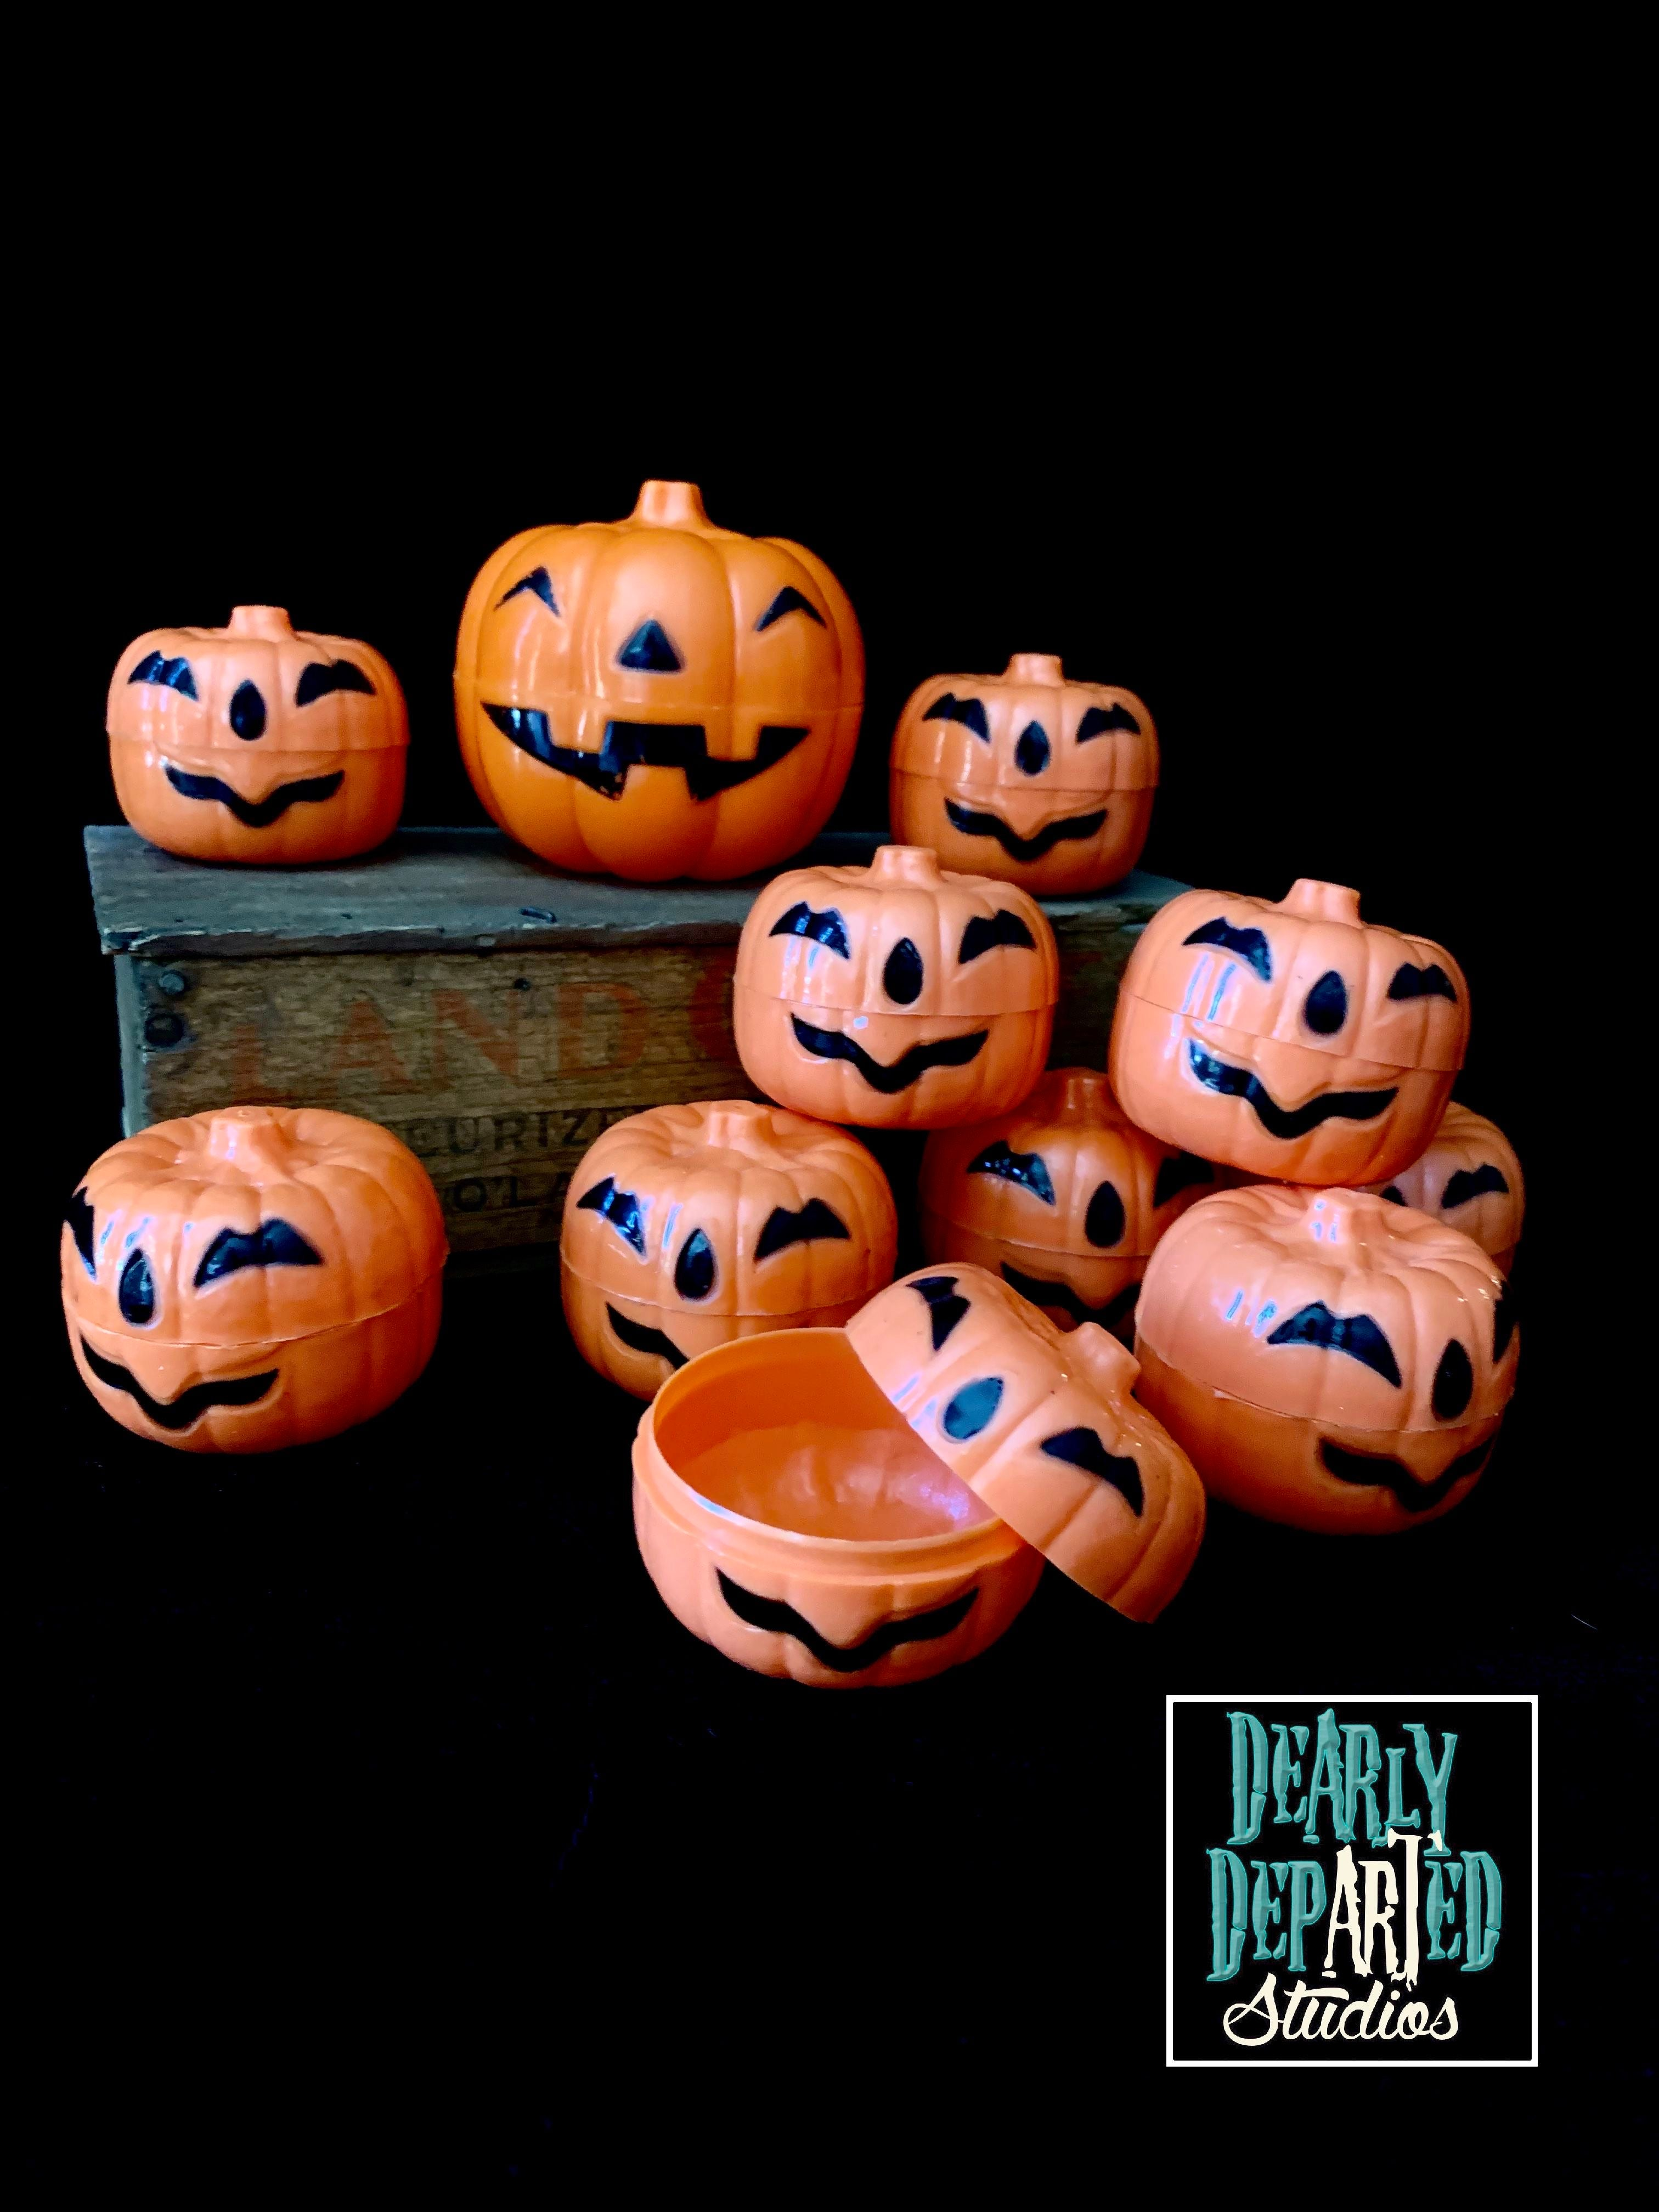 Vintage 1995 Jack O'Lantern Candy Containers